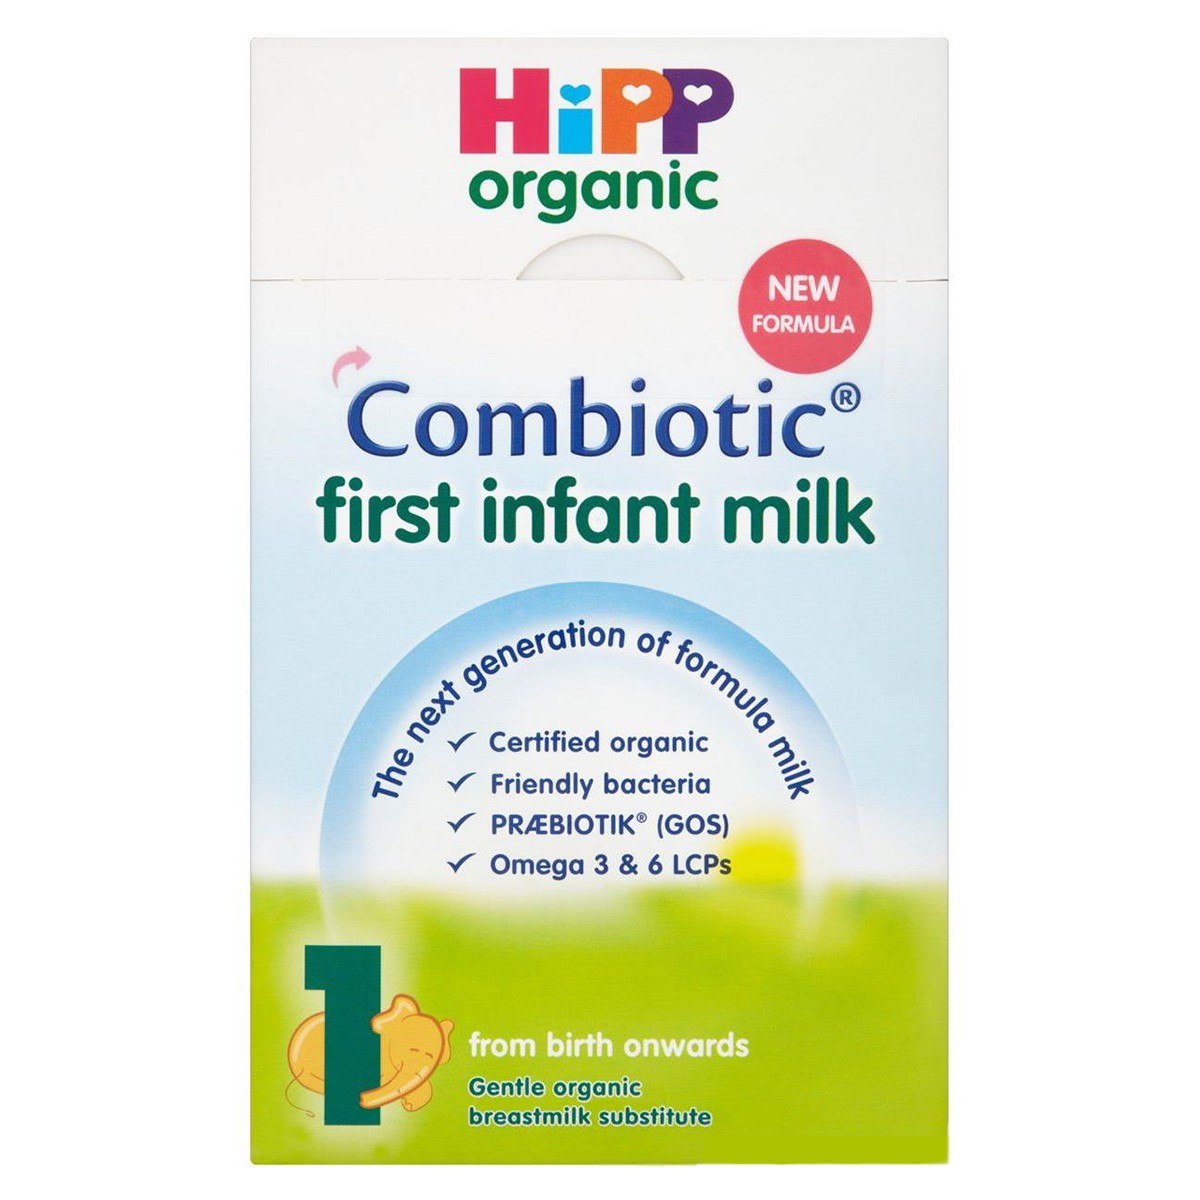 Hipp Organic Combiotic First Infant Milk 1 (from birth onwards)